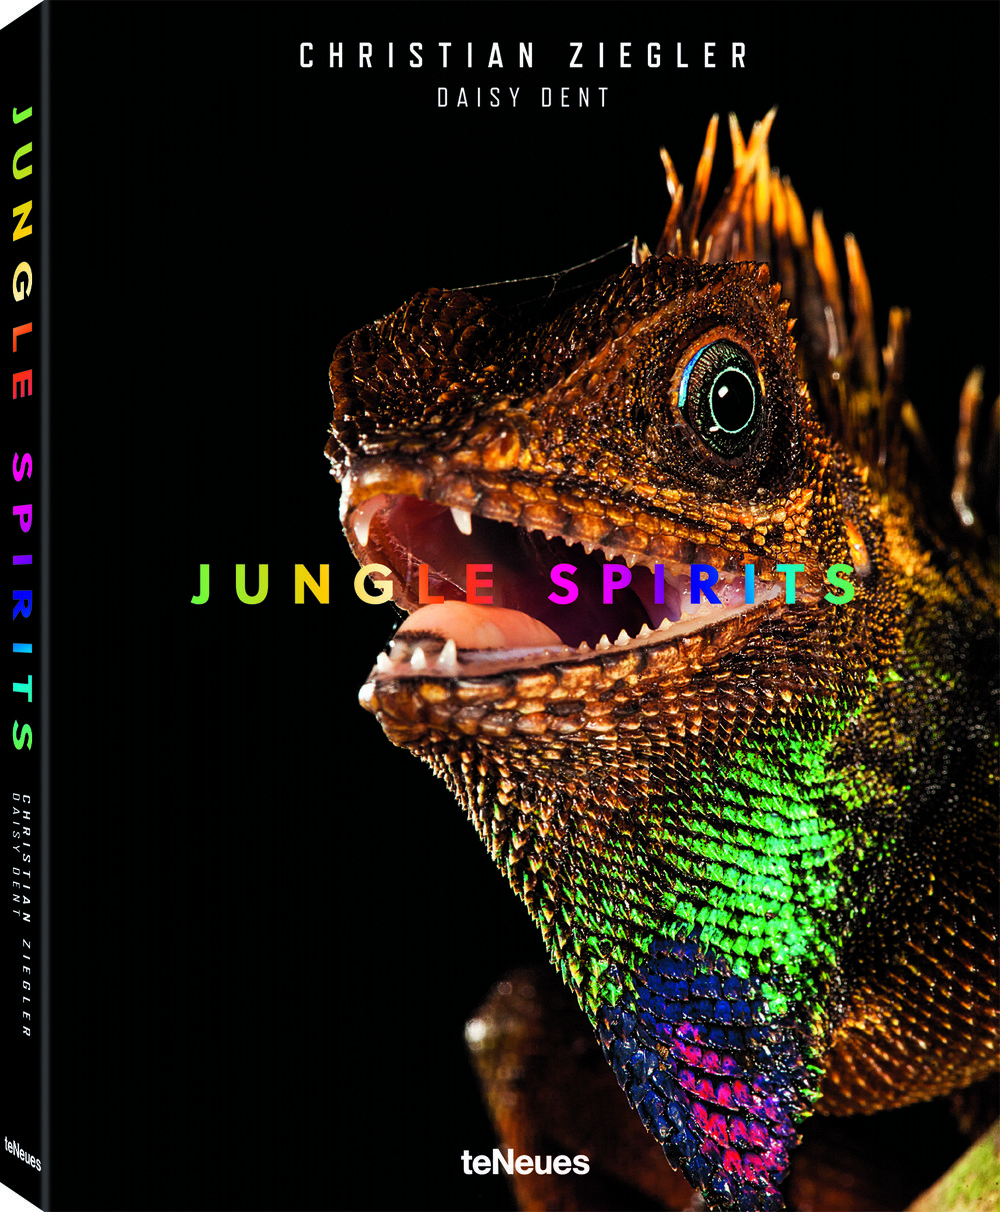 © Jungle Spirits by Christian Ziegler & Daisy Dent, published by teNeues, € 49,90, www.teneues.com, Bell's forest dragon (Gonocephalus bellii), Malaysia, Photo © 2017 Christian Ziegler. All rights reserved. www.christianziegler.photography